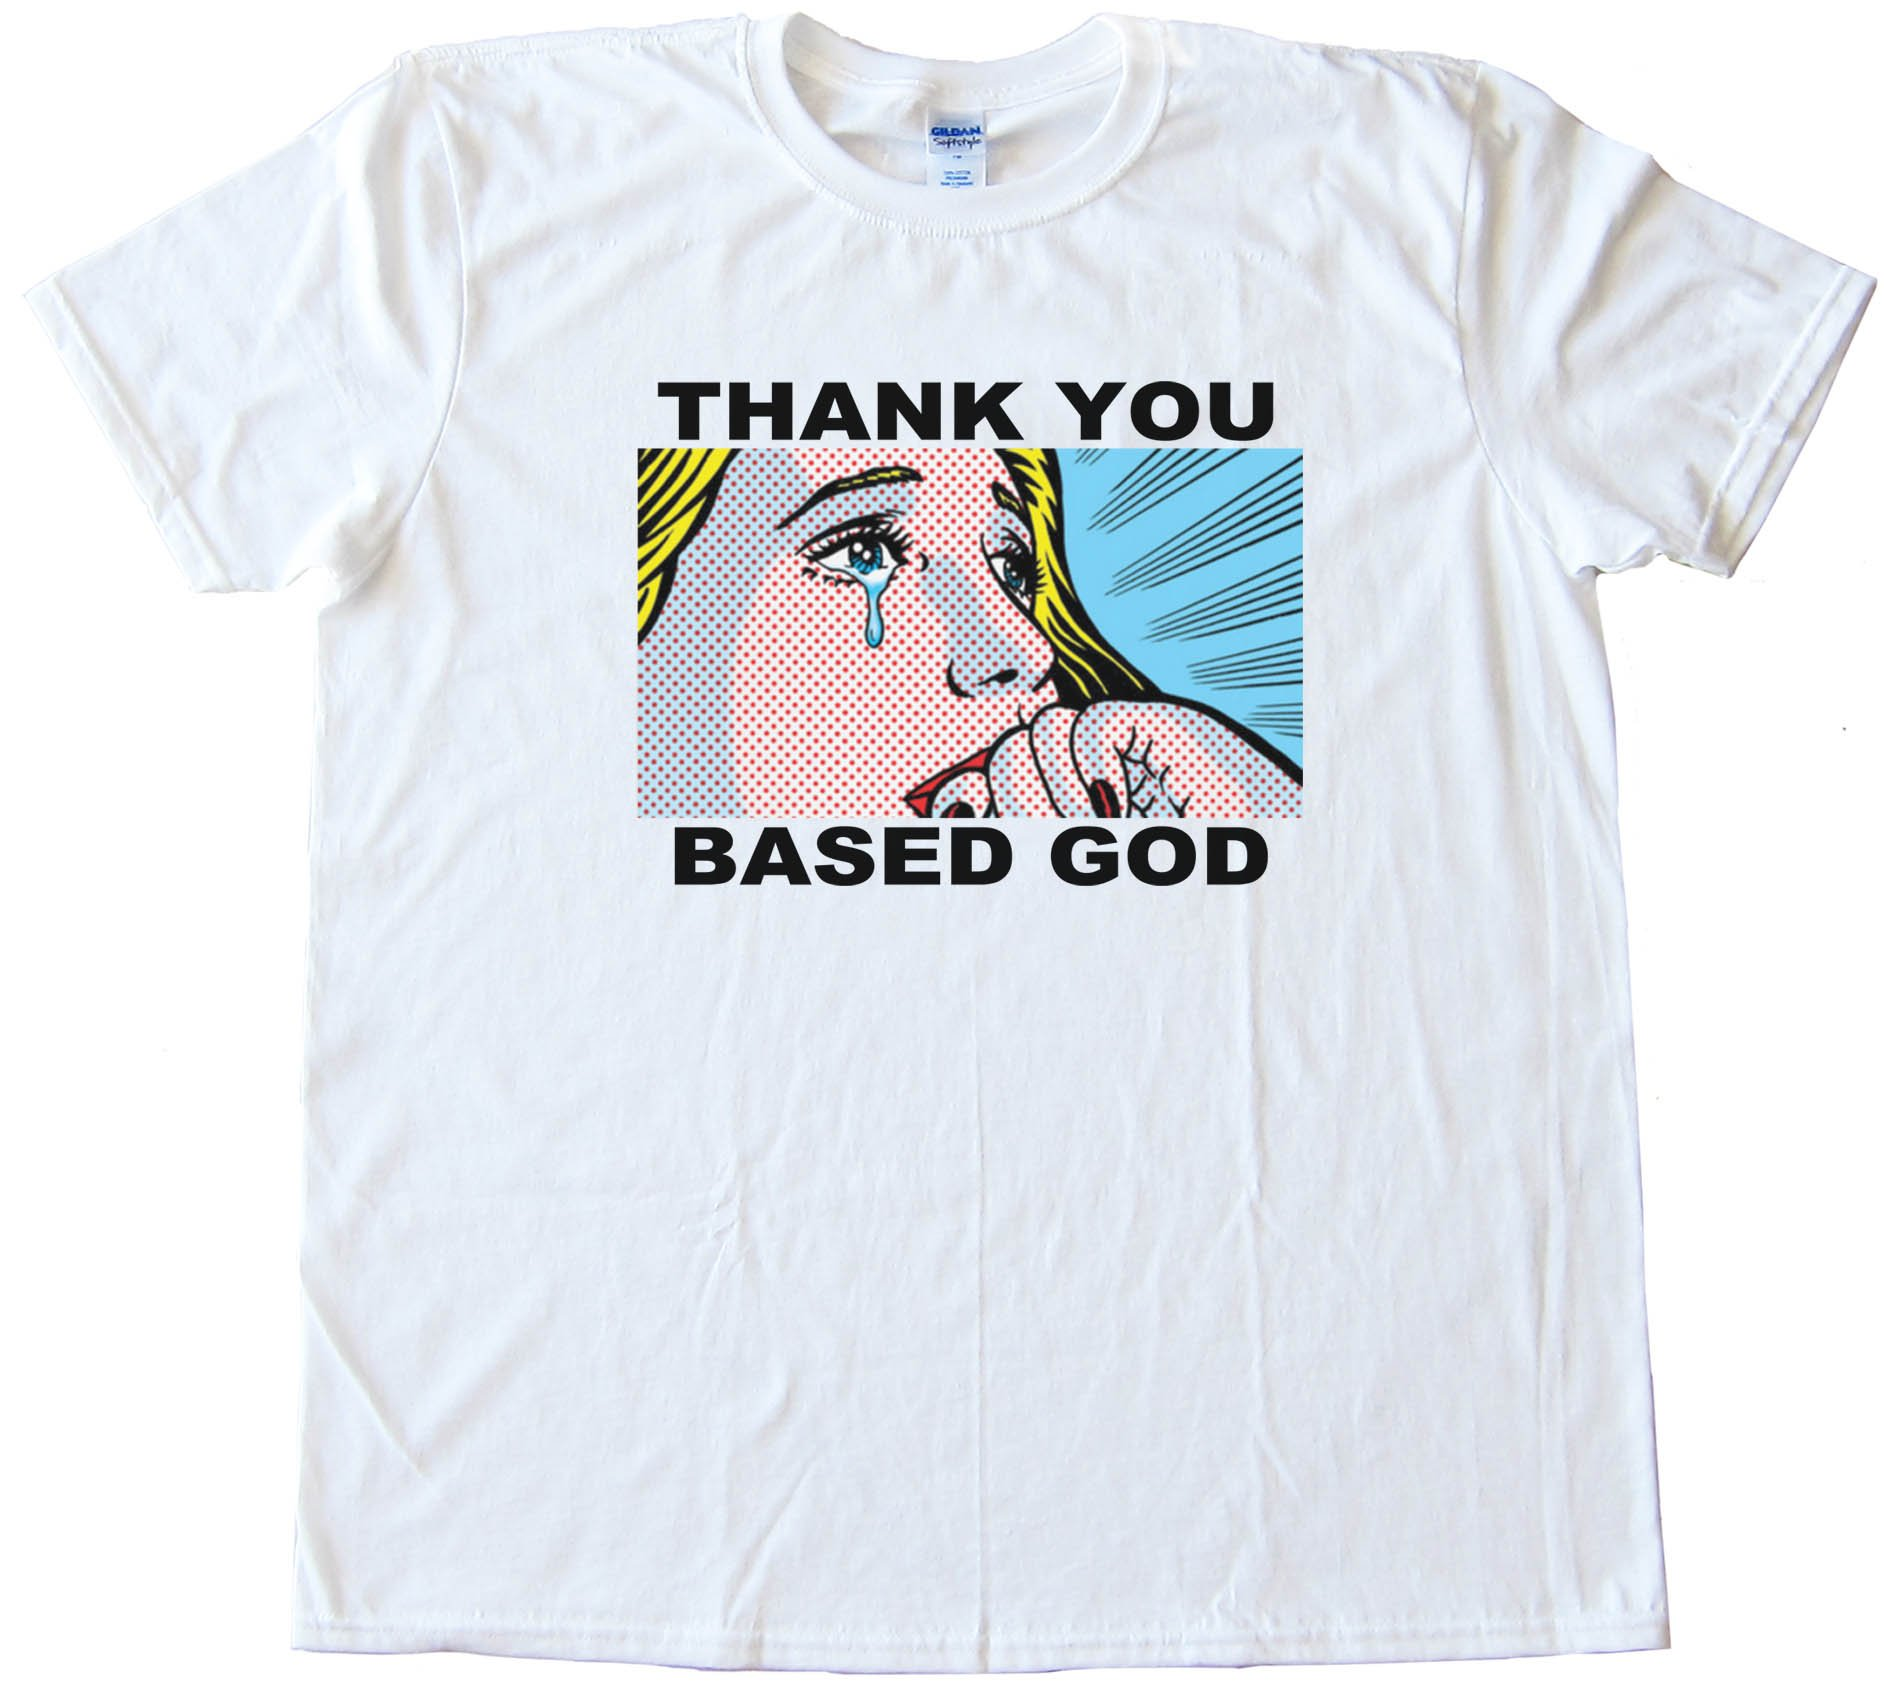 Thank You Based God Cartoon Girl Crying - Tee Shirt